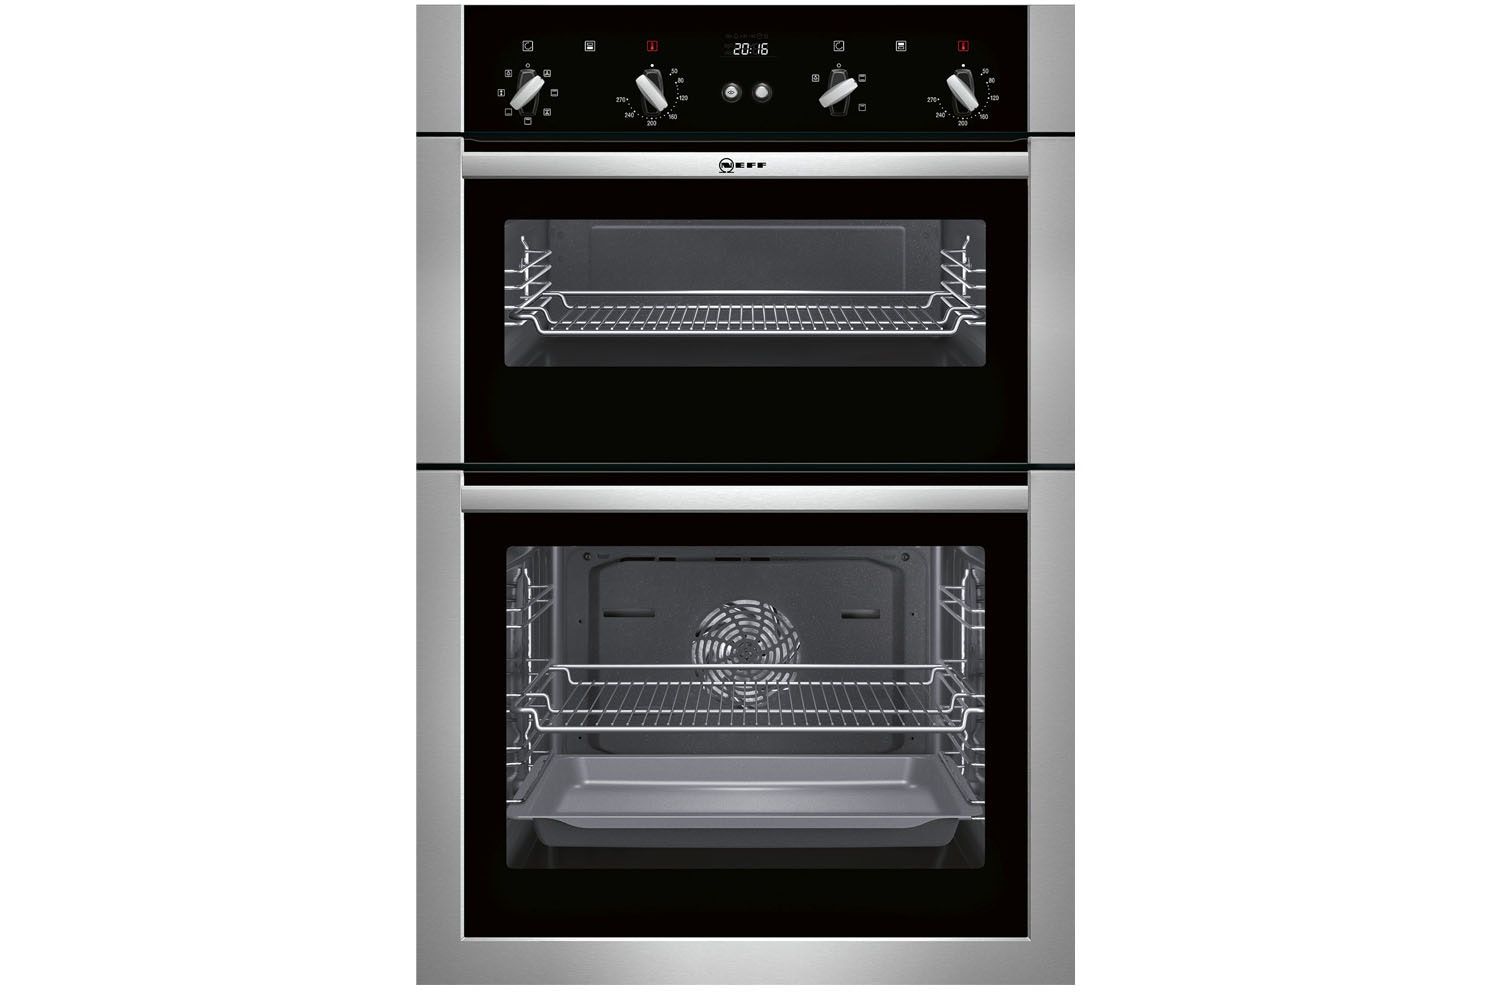 Neff Built-in Double Oven | U14M42N5GB